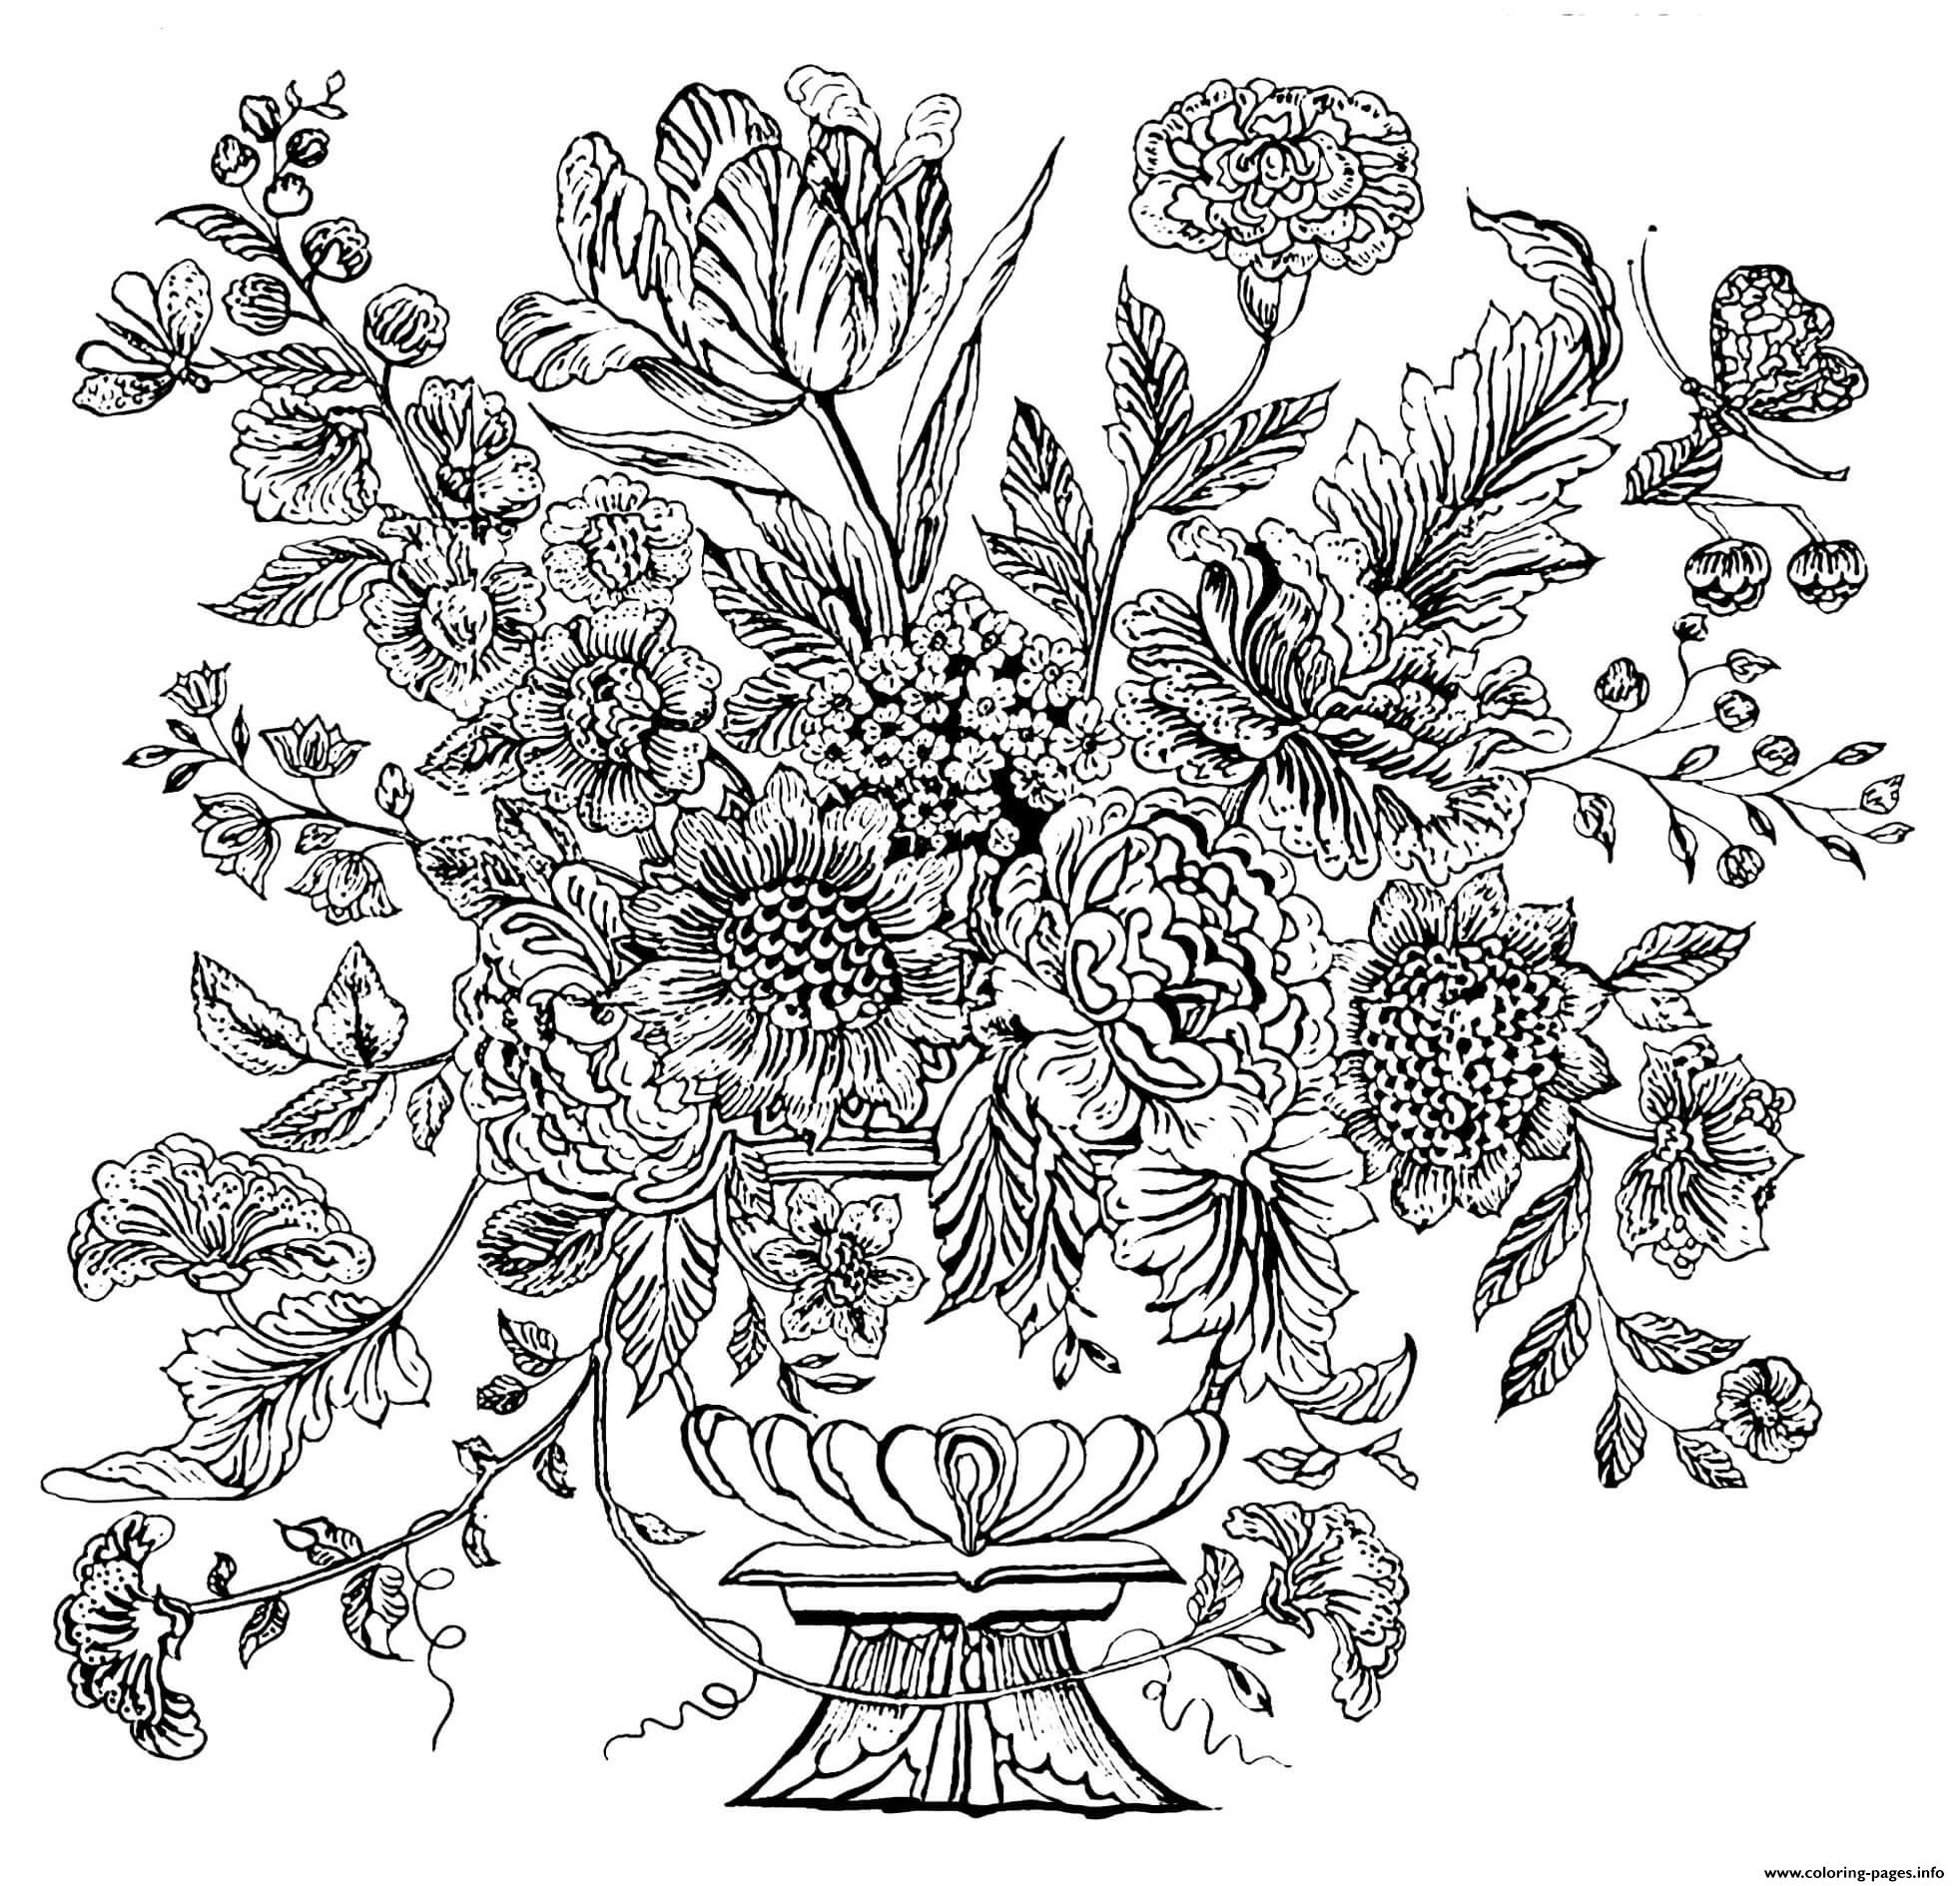 Free Complex Flower Coloring Pages, Download Free Clip Art, Free ... | 1889x1963